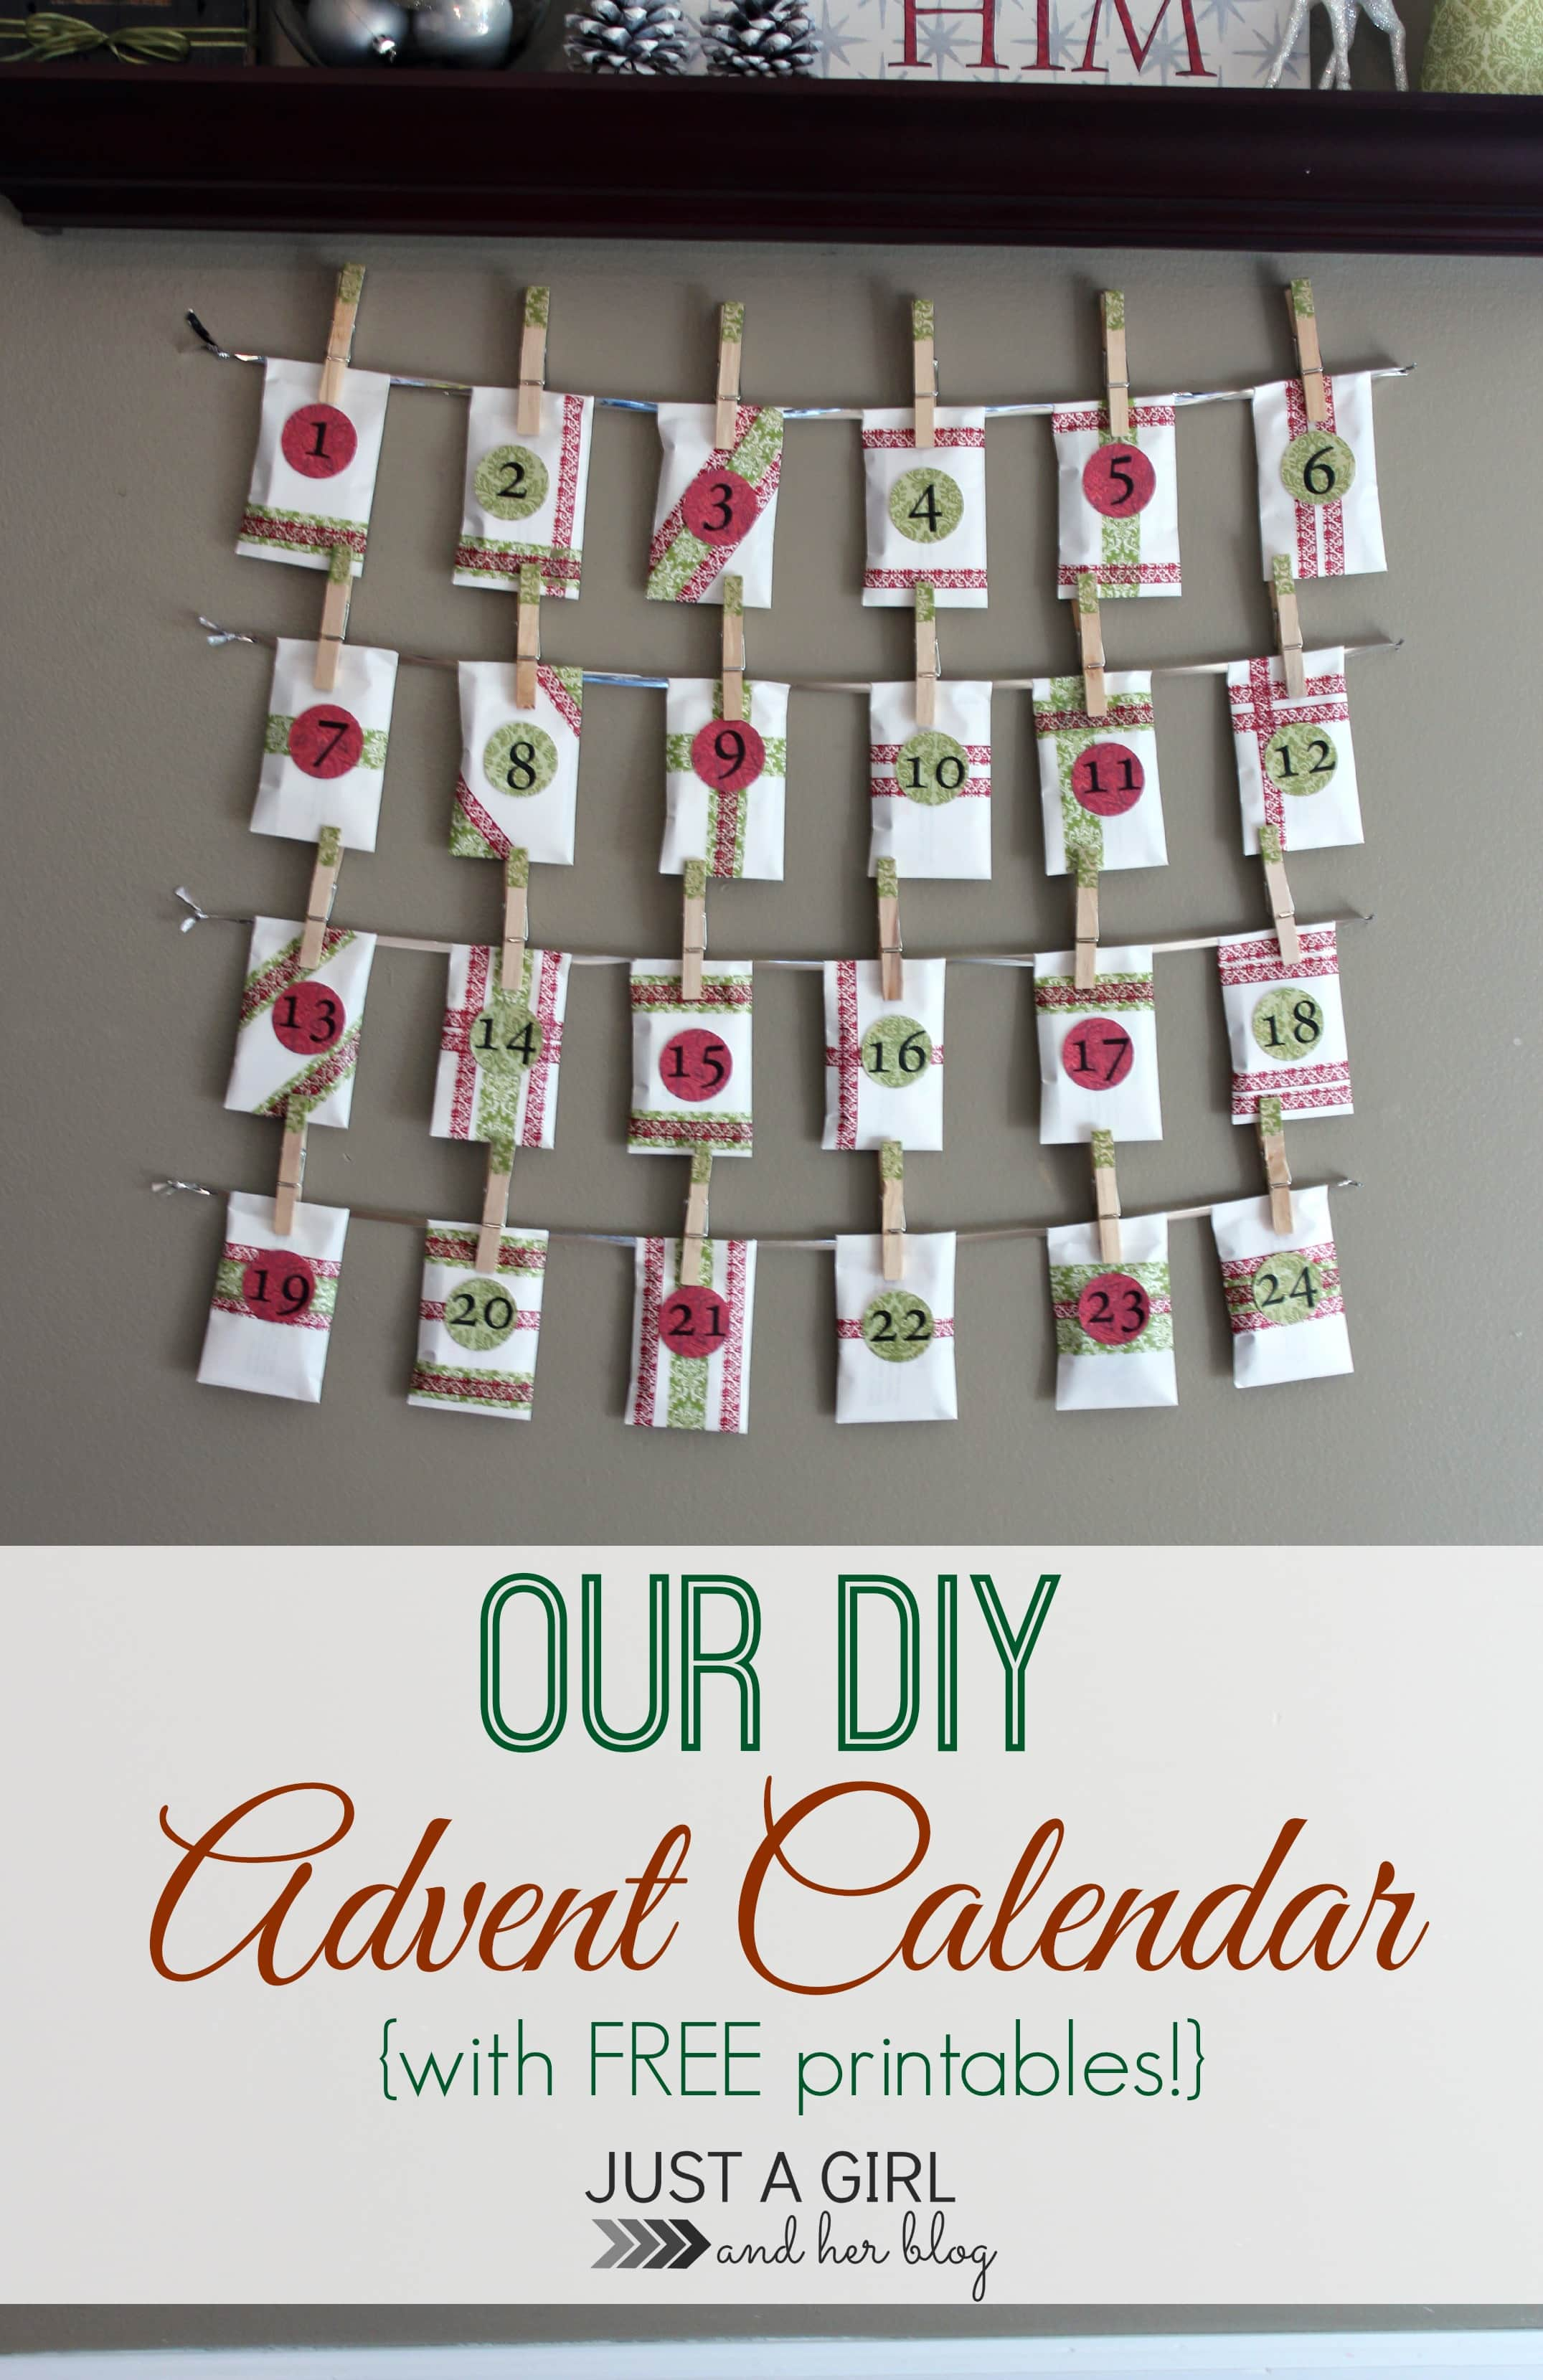 Our diy advent calendar with free printables just a girl and our diy advent calendar with free printables by just a girl and her blog solutioingenieria Image collections